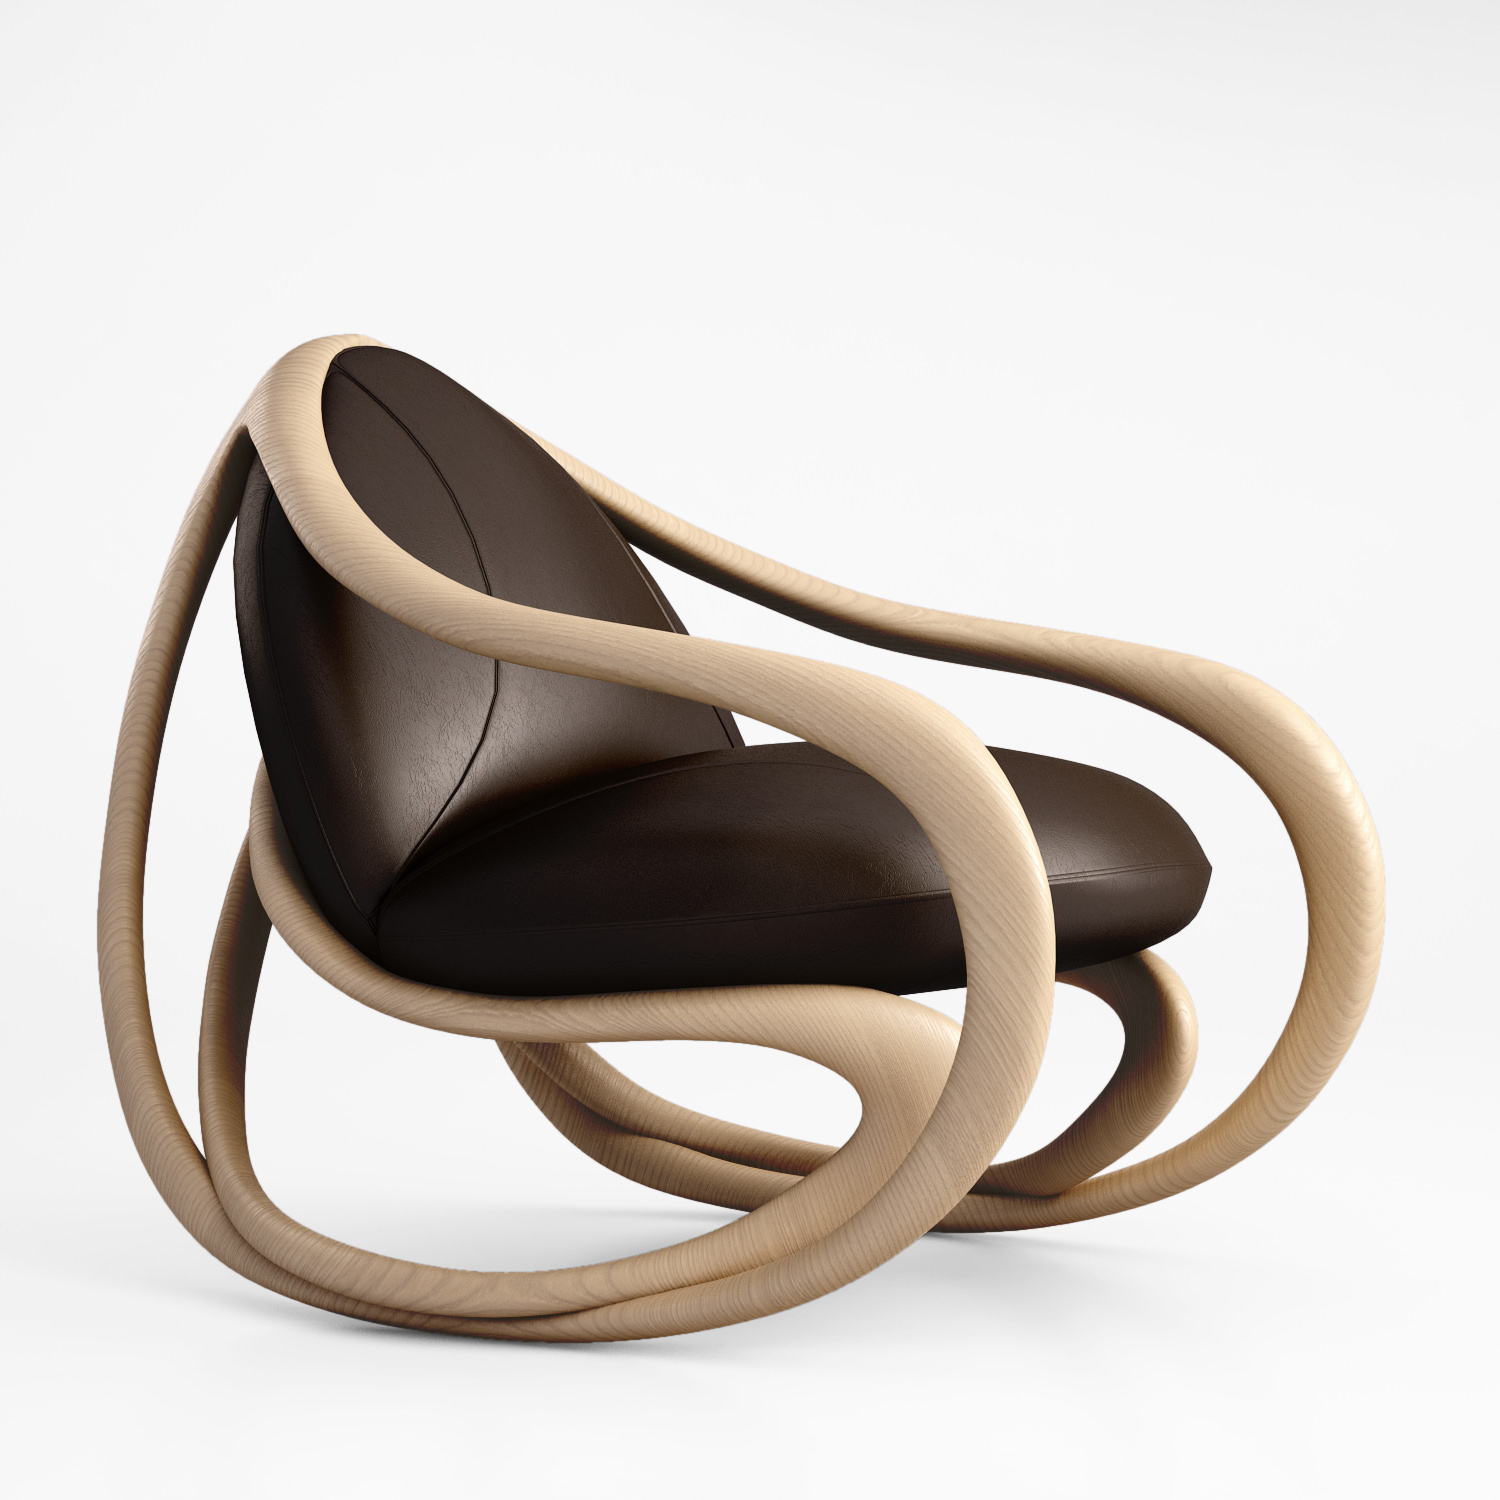 Giorgetti Move Armchair 3d Model Cgtrader